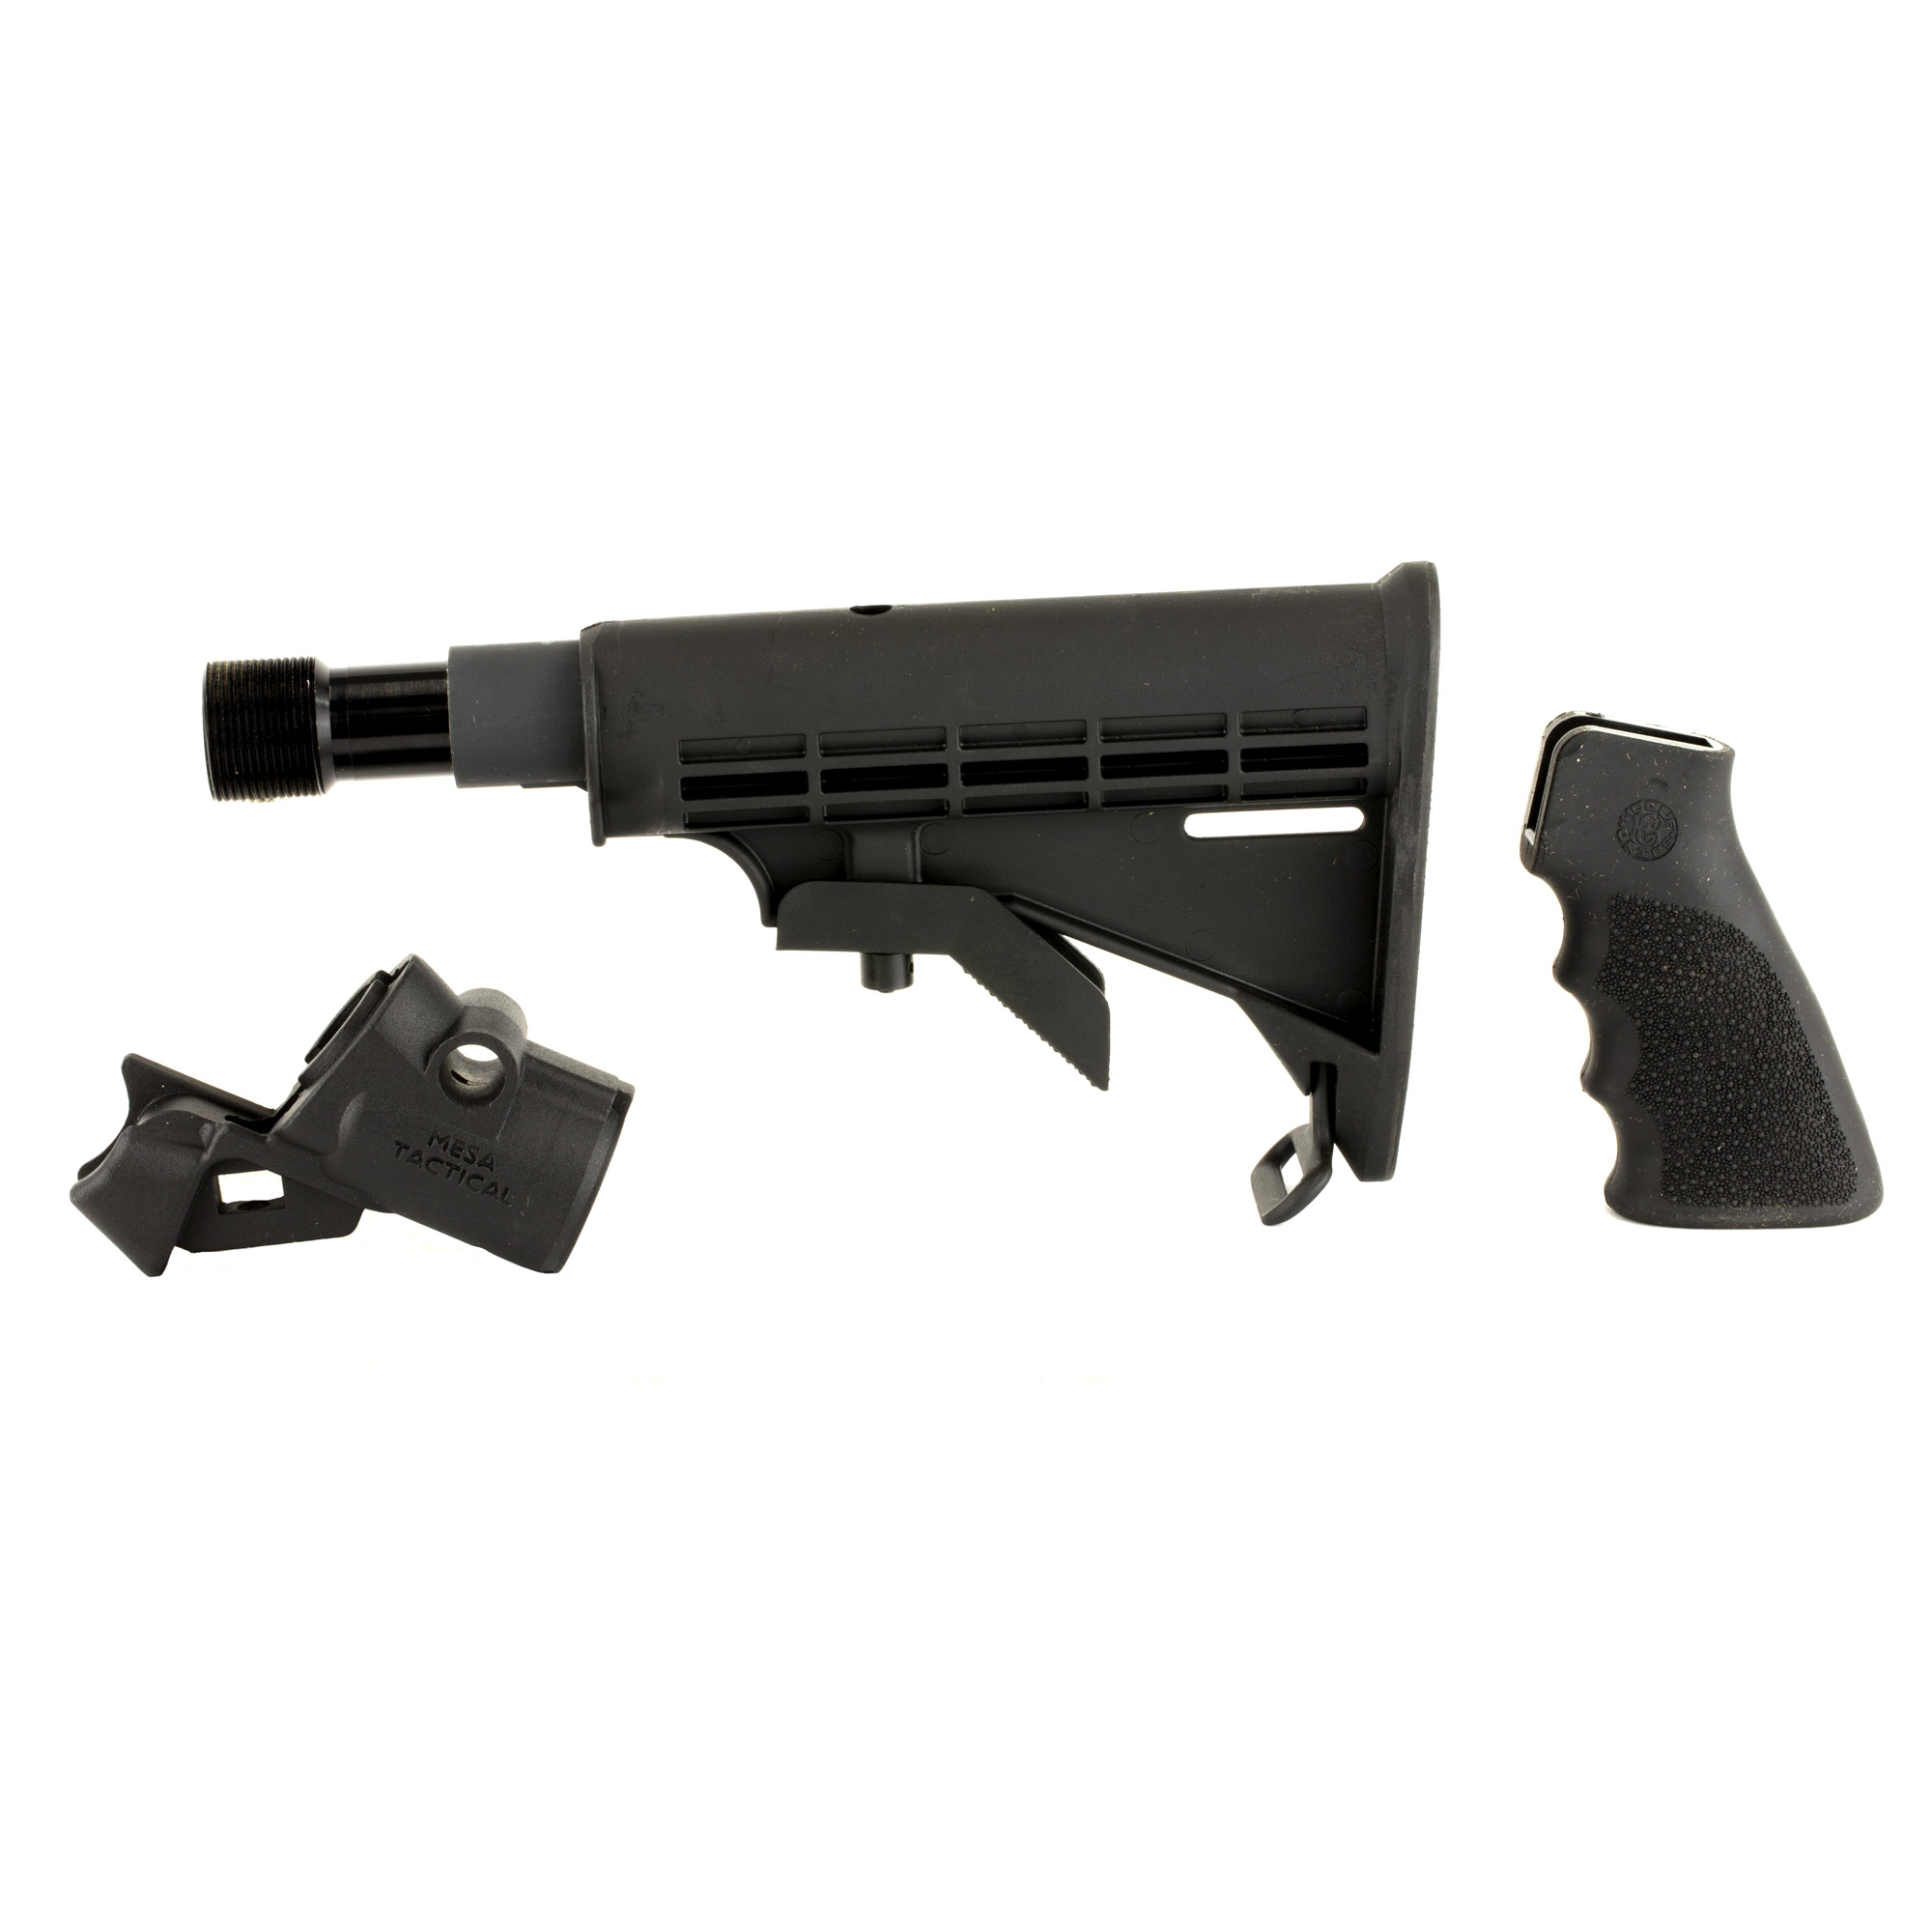 """Mesa Tactical's LEO Telescoping Recoil Stock Kit for Mossberg 500/590 is the perfect kit for anyone looking to convert their 12-gauge shotgun to accept AR-15 parts and accessories. This adapter provides you with the ability to utilize AR-15 pistol grips"""" carbine receiver extensions and stocks. The LEO adapter will provide you with an optimal stock elevation allowing the use of iron sights or bead sights. The adapter also features a quick detach sling swivel socket and is made from high quality"""" precision"""" CNC machined aluminum. This kit also includes the Hydraulic recoil buffer designed to eat up the recoil on your defensive shotgun. The adapter is easy to install and does not require a gunsmith to install."""